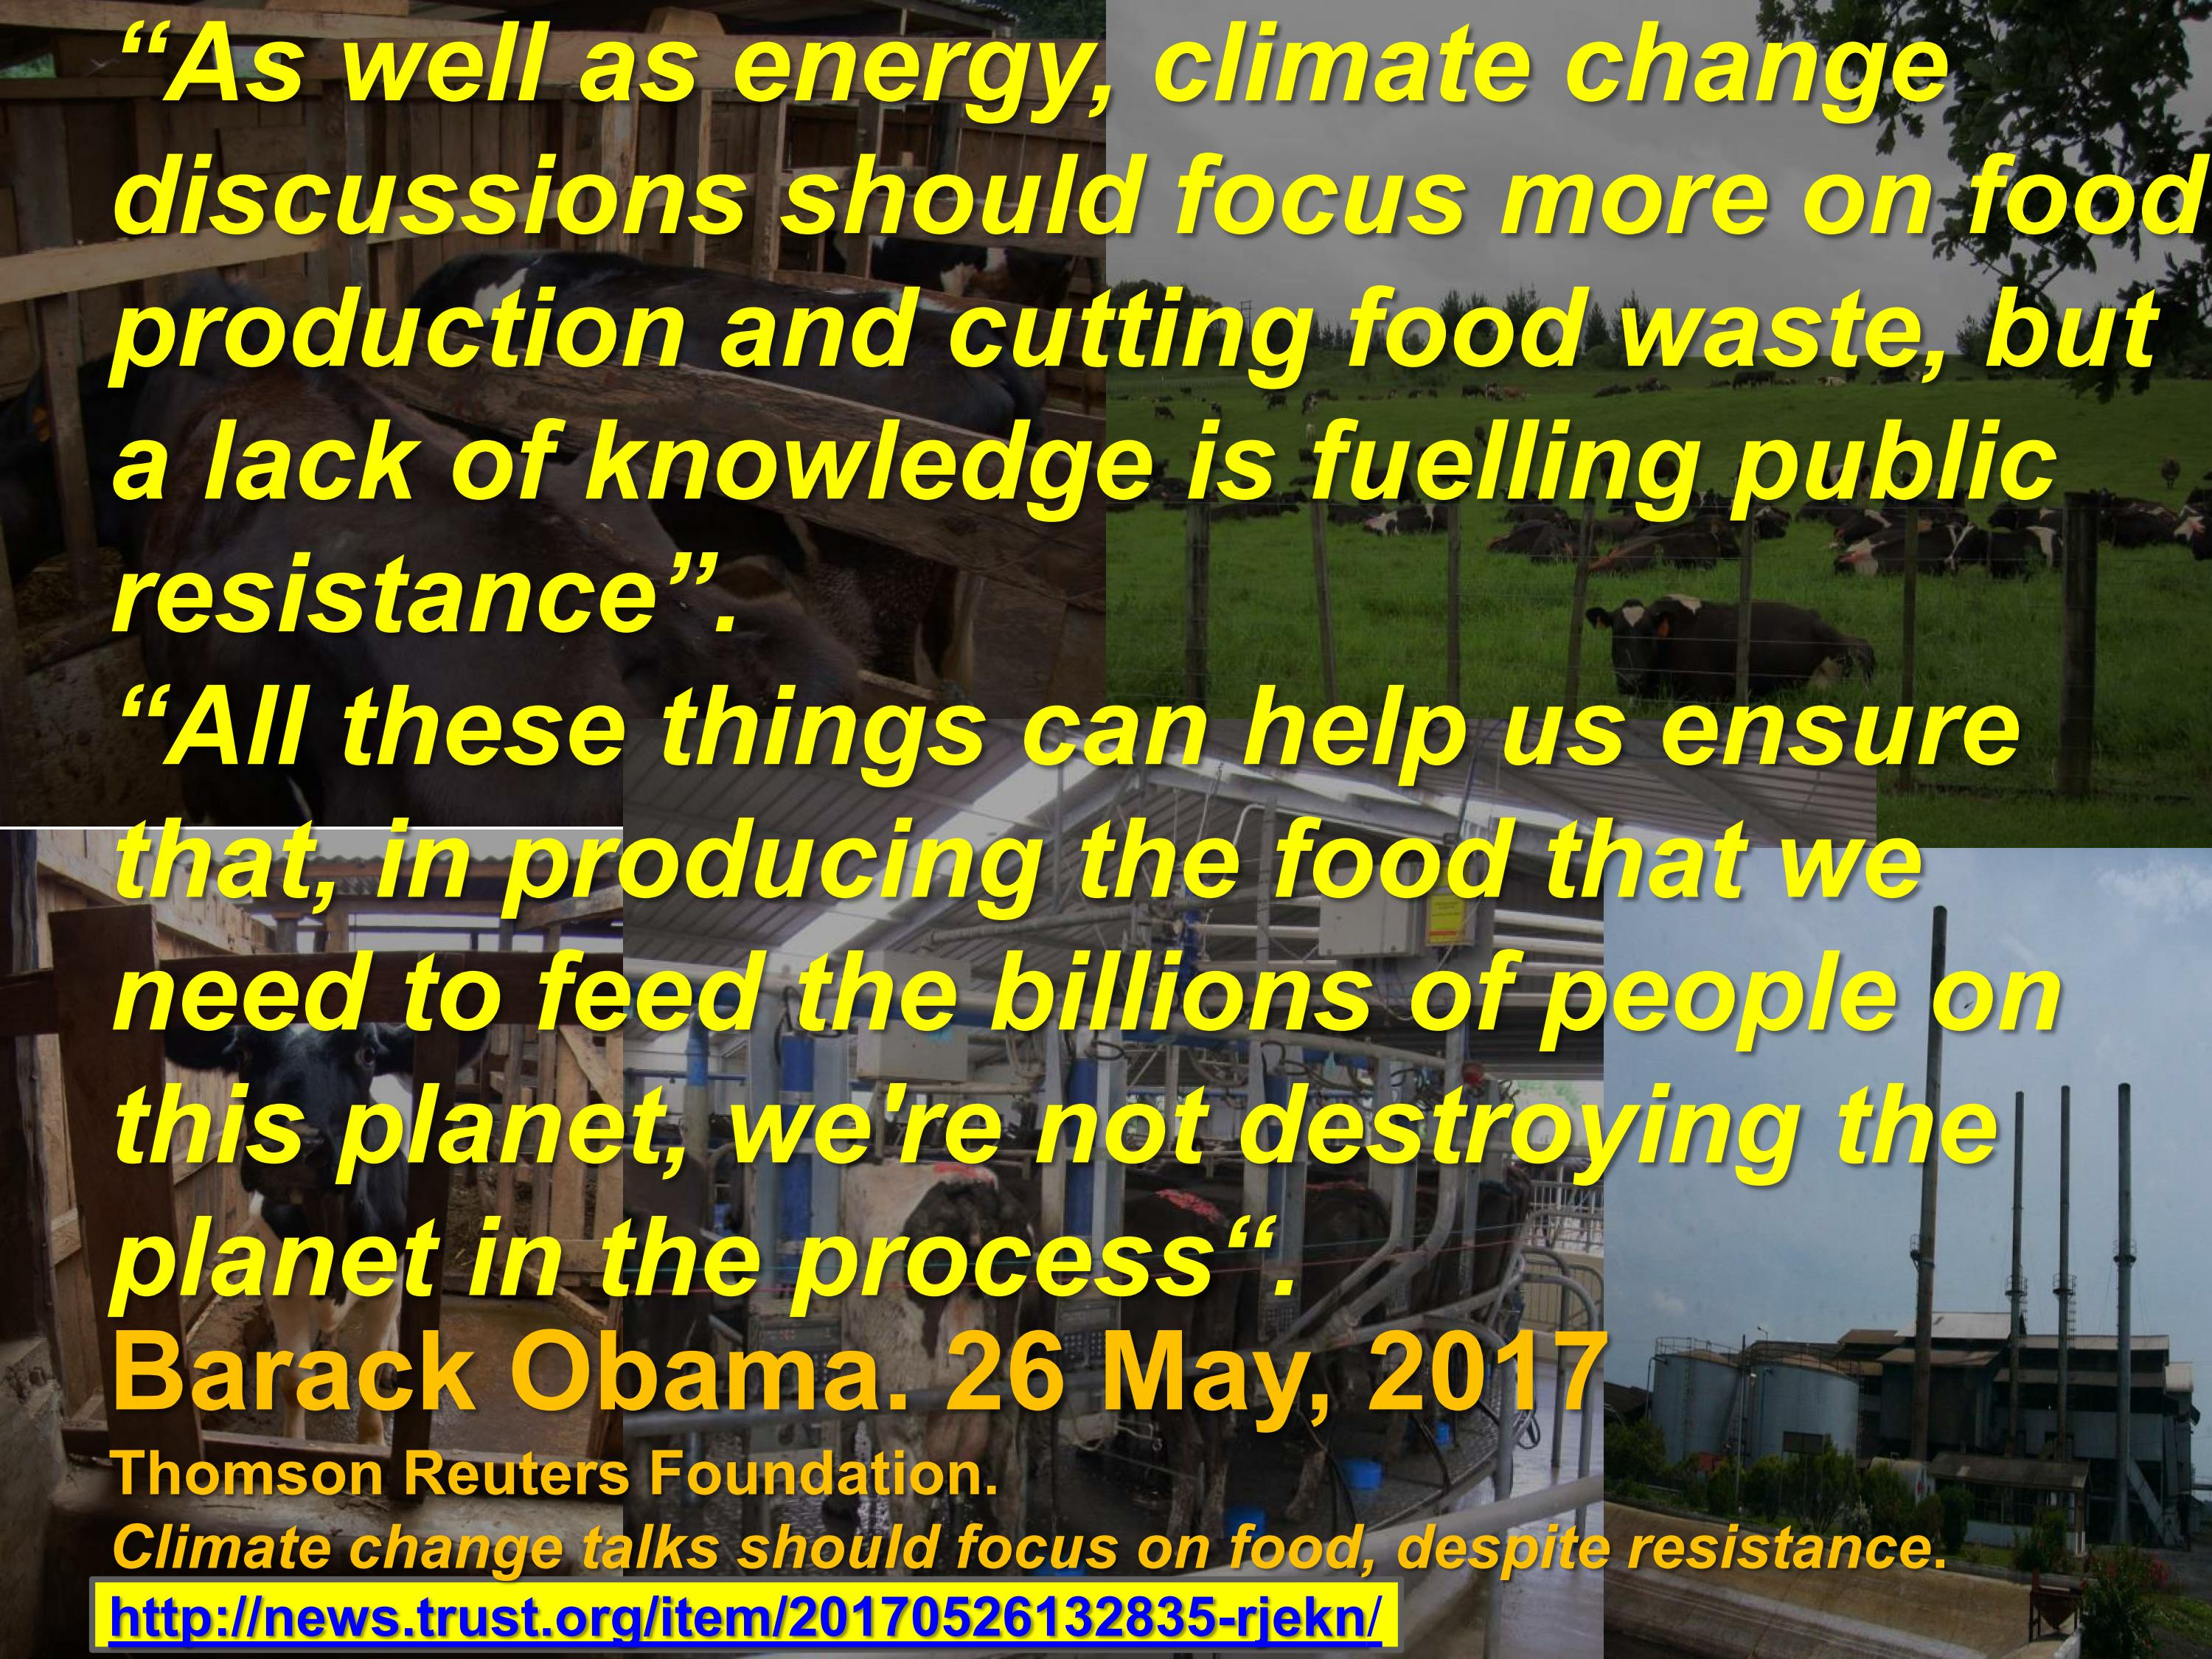 climat change and food security As well as enhancing food security, carbon sequestration has the potential to offset fossilfuel emissions by 04 to 12 gigatons of carbon per year, or 5 to 15% of the global fossil-fuel emissions the carbon sink capacity of the world's agricultural and degraded soils is 50 to 66% of the historic carbon loss of 42 to 78 gigatons of carbon.